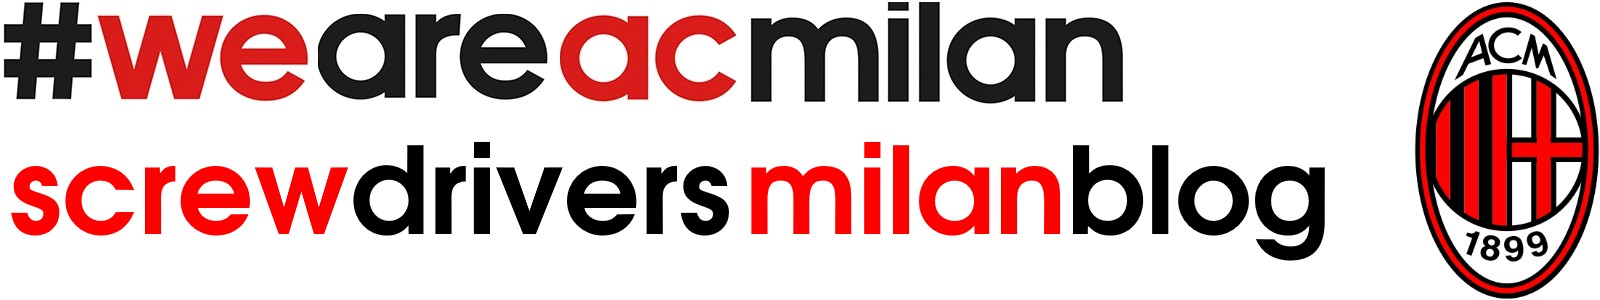 Screwdrivers 2.0